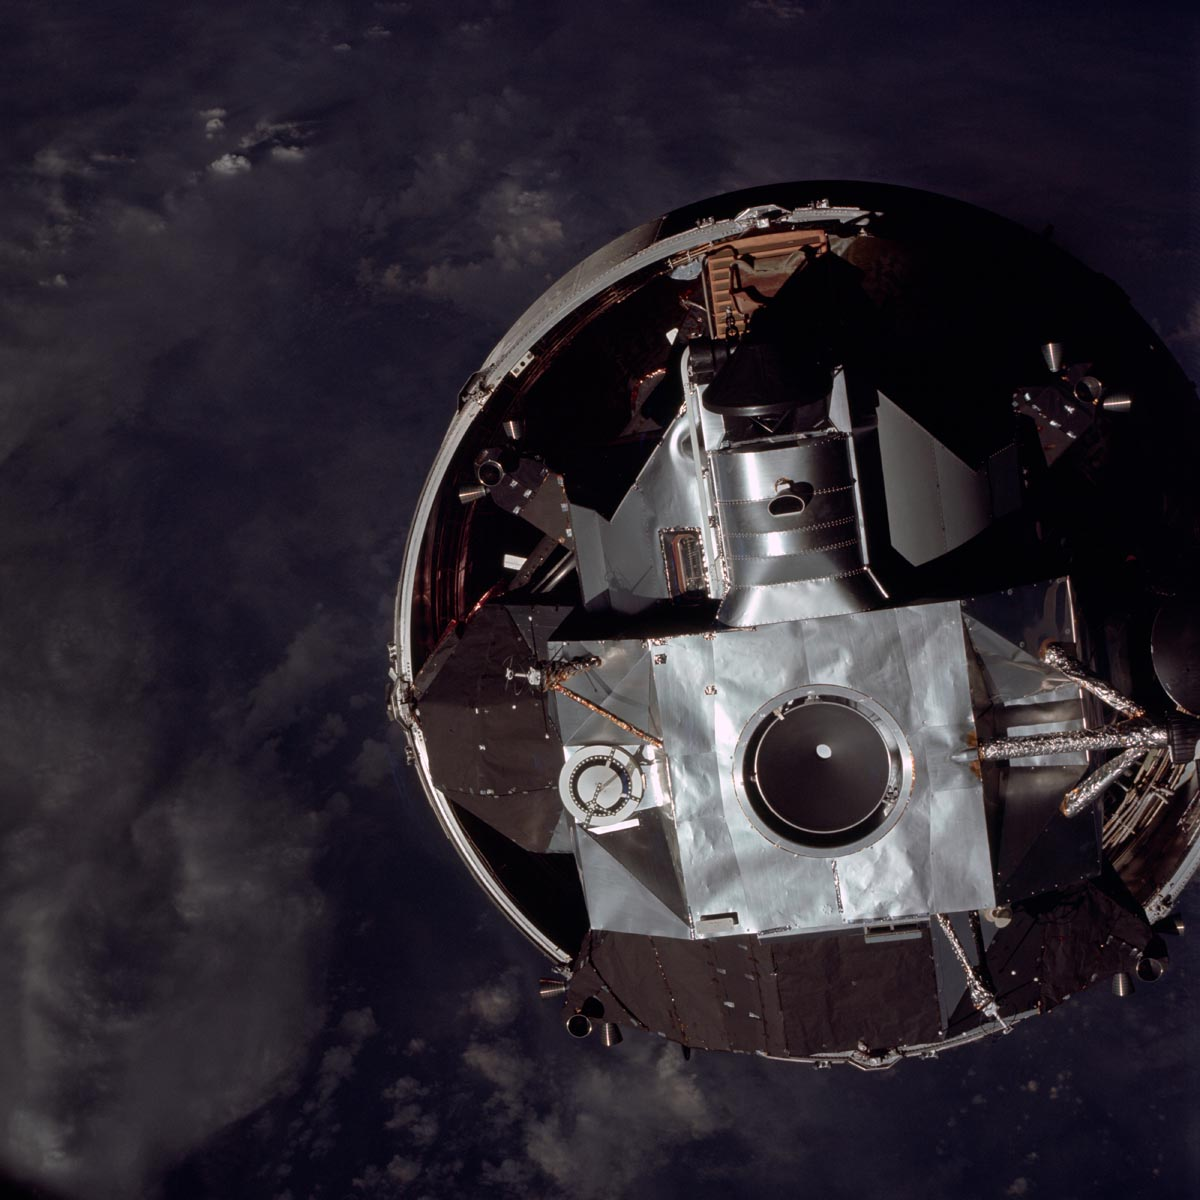 essays on apollo 13 decision-making Download free essays, term papers, and research papers.